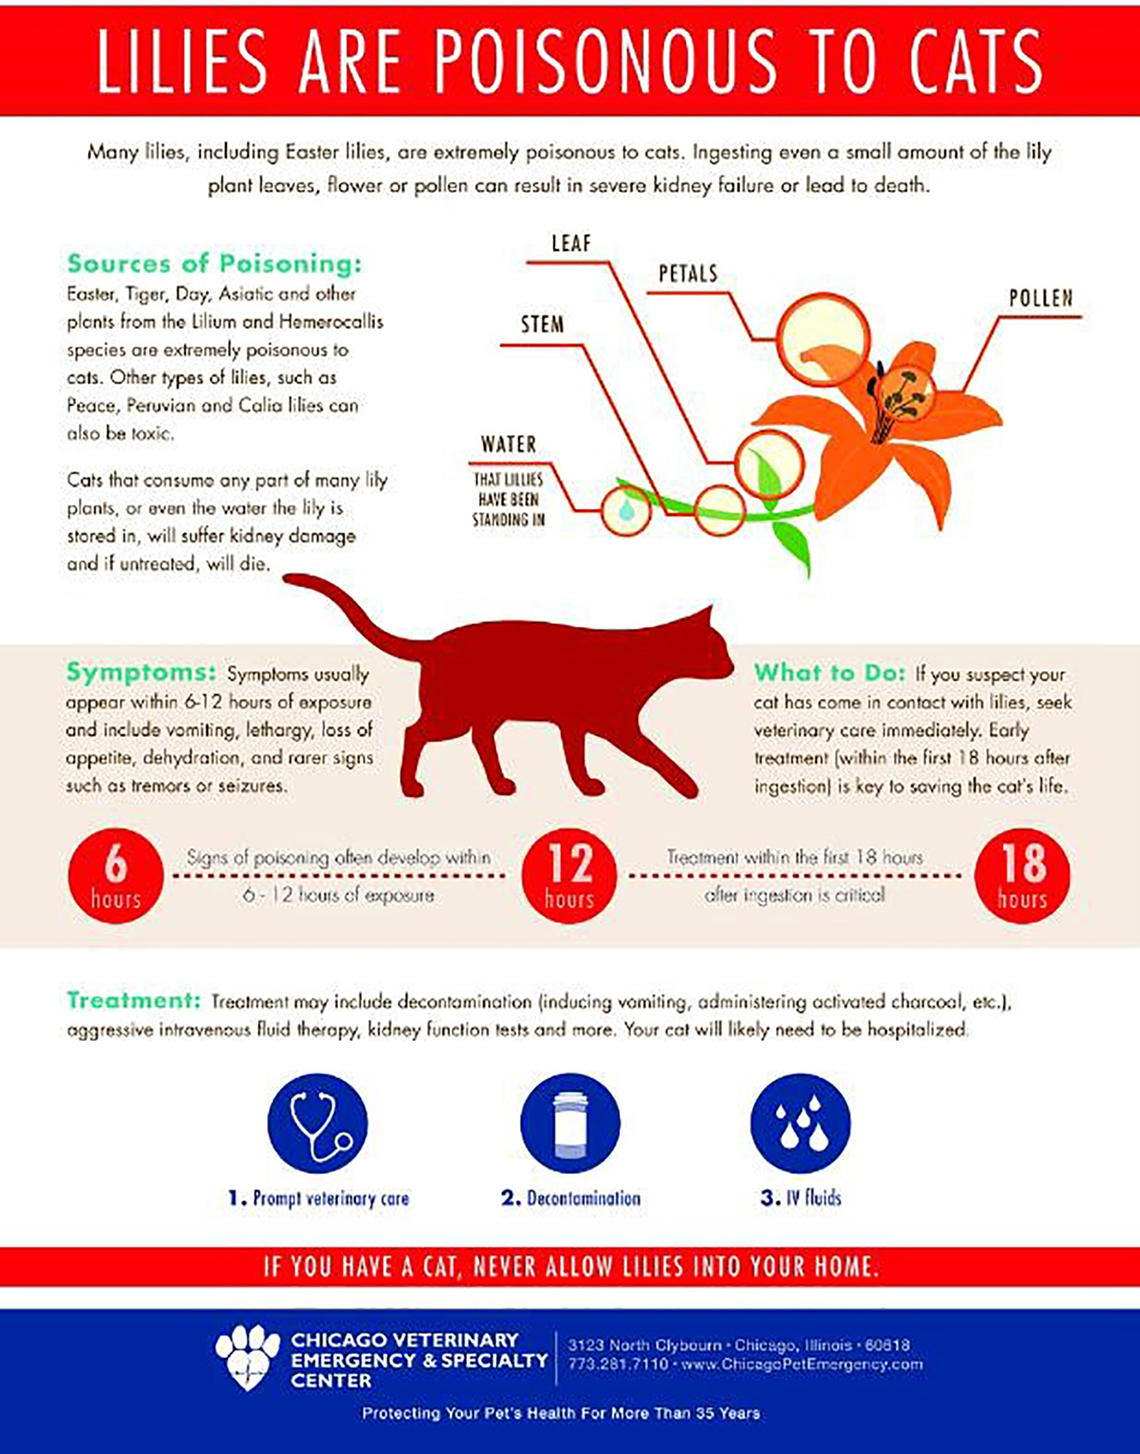 lilies-poisonous-to-cats